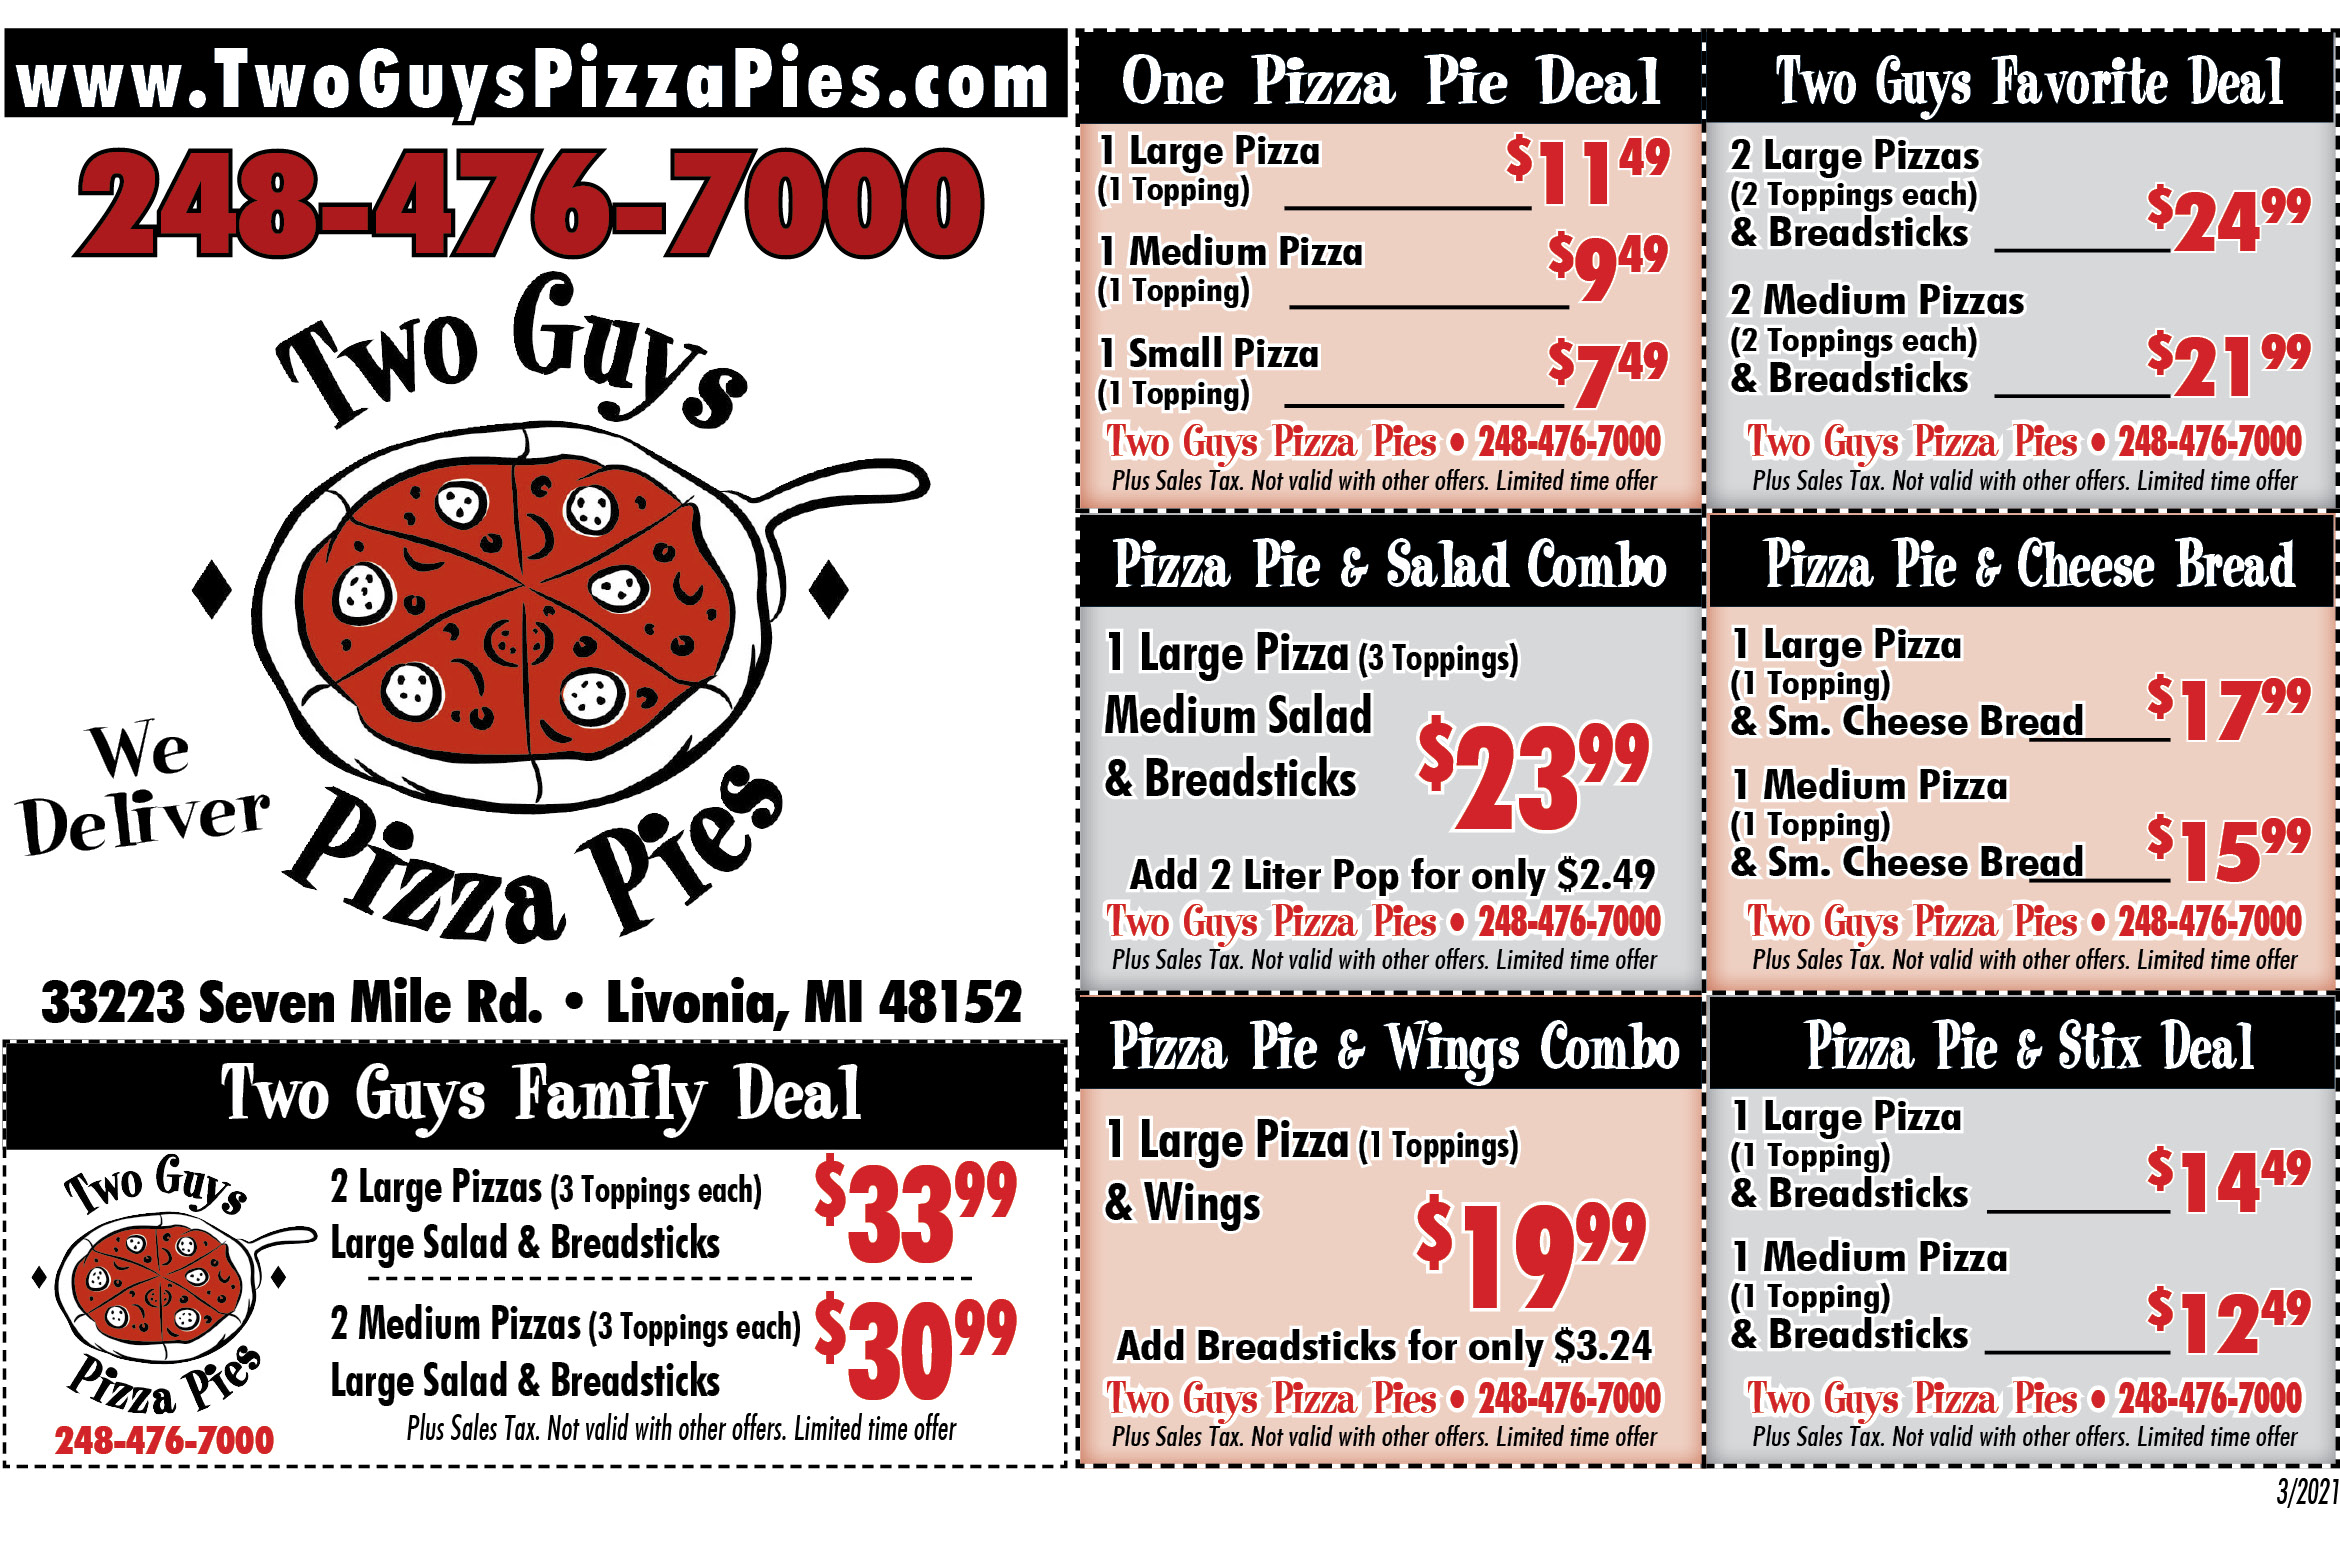 Two Guys Pizza Pies coupons